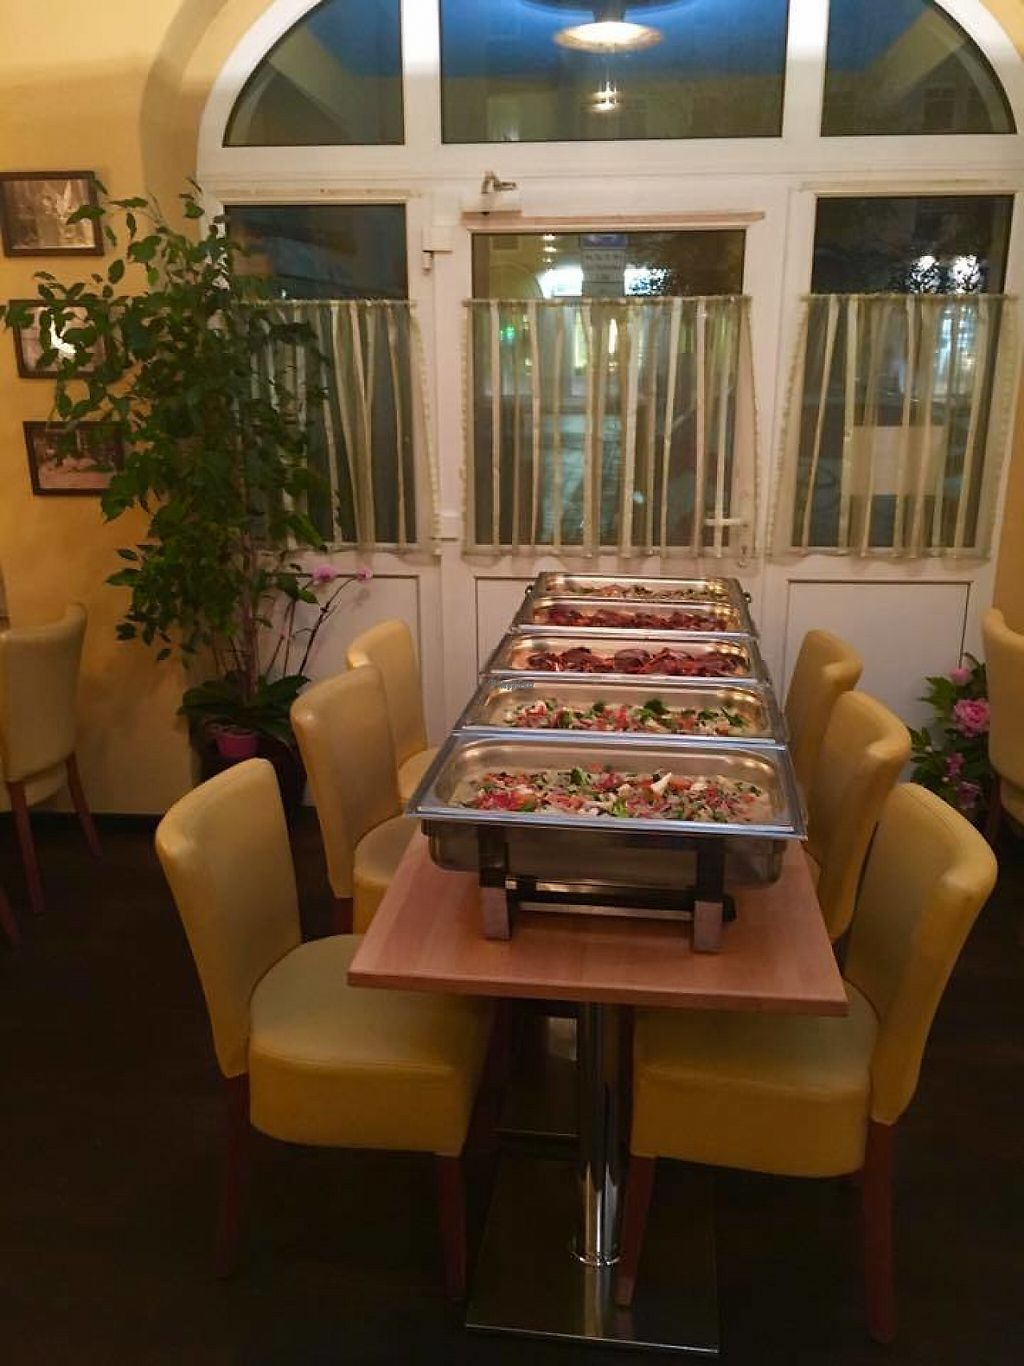 """Photo of Ban Thai  by <a href=""""/members/profile/community"""">community</a> <br/>Ban Thai <br/> February 17, 2017  - <a href='/contact/abuse/image/72533/227223'>Report</a>"""